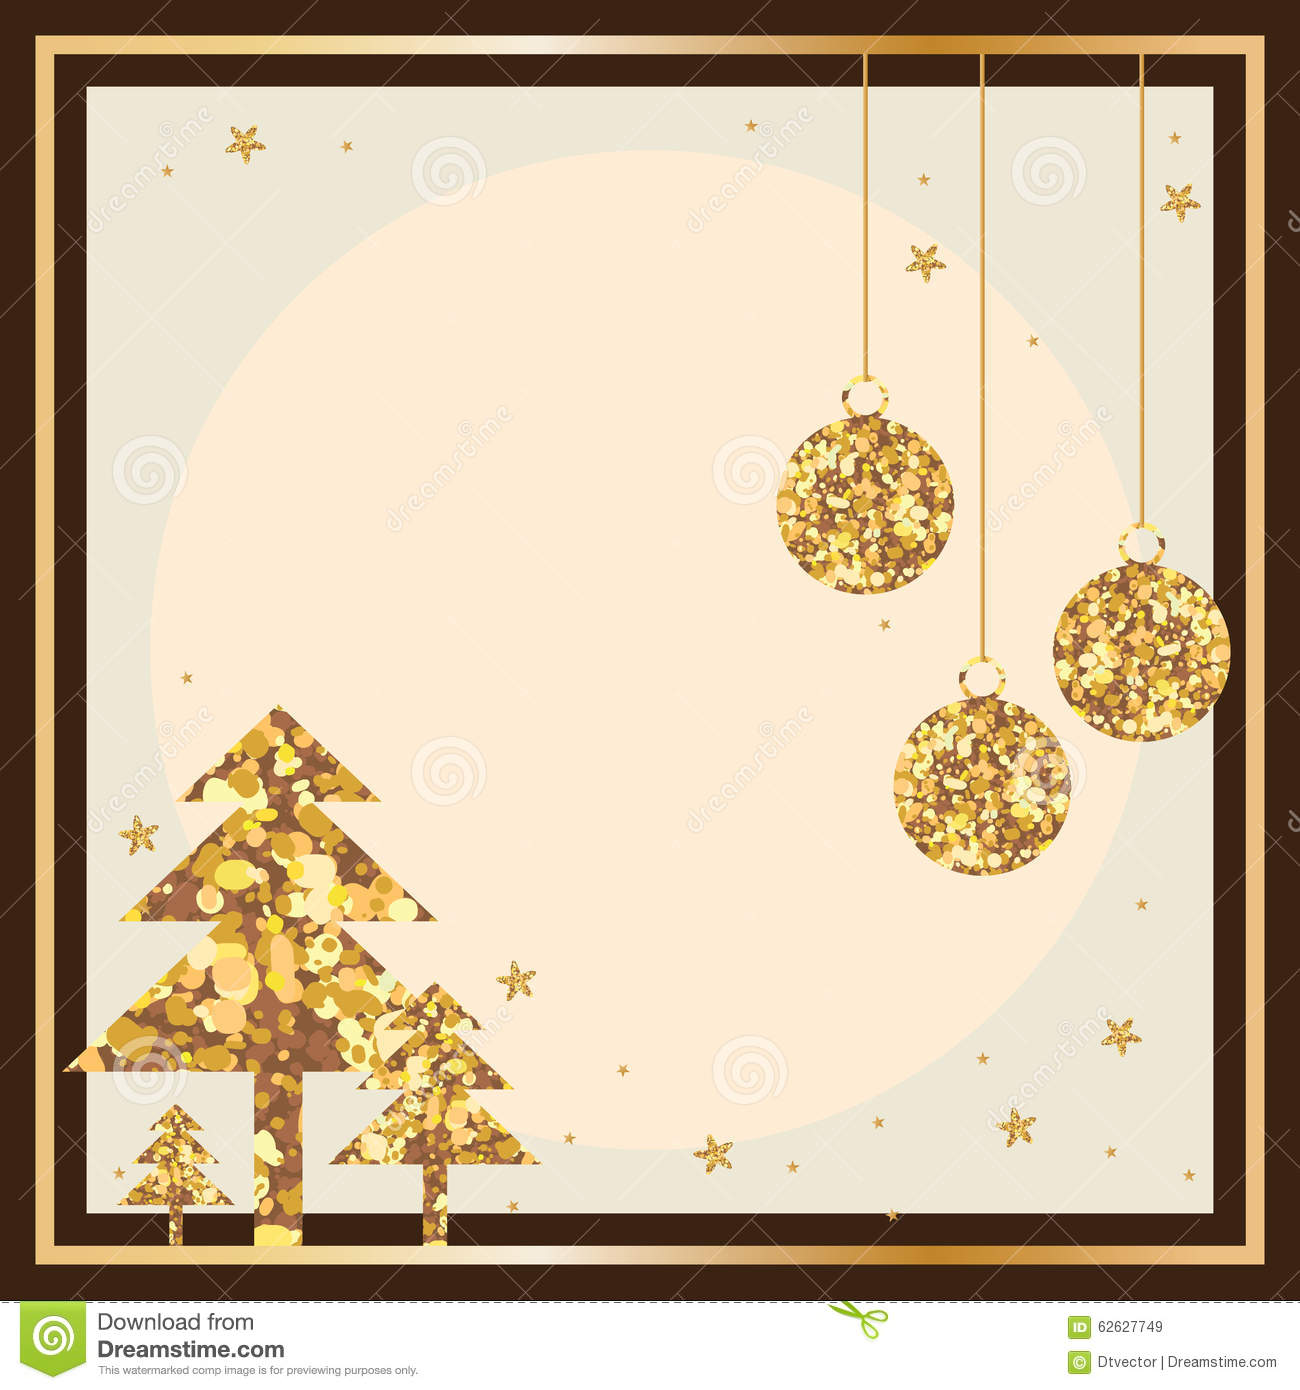 christmas card frames free - Military.bralicious.co